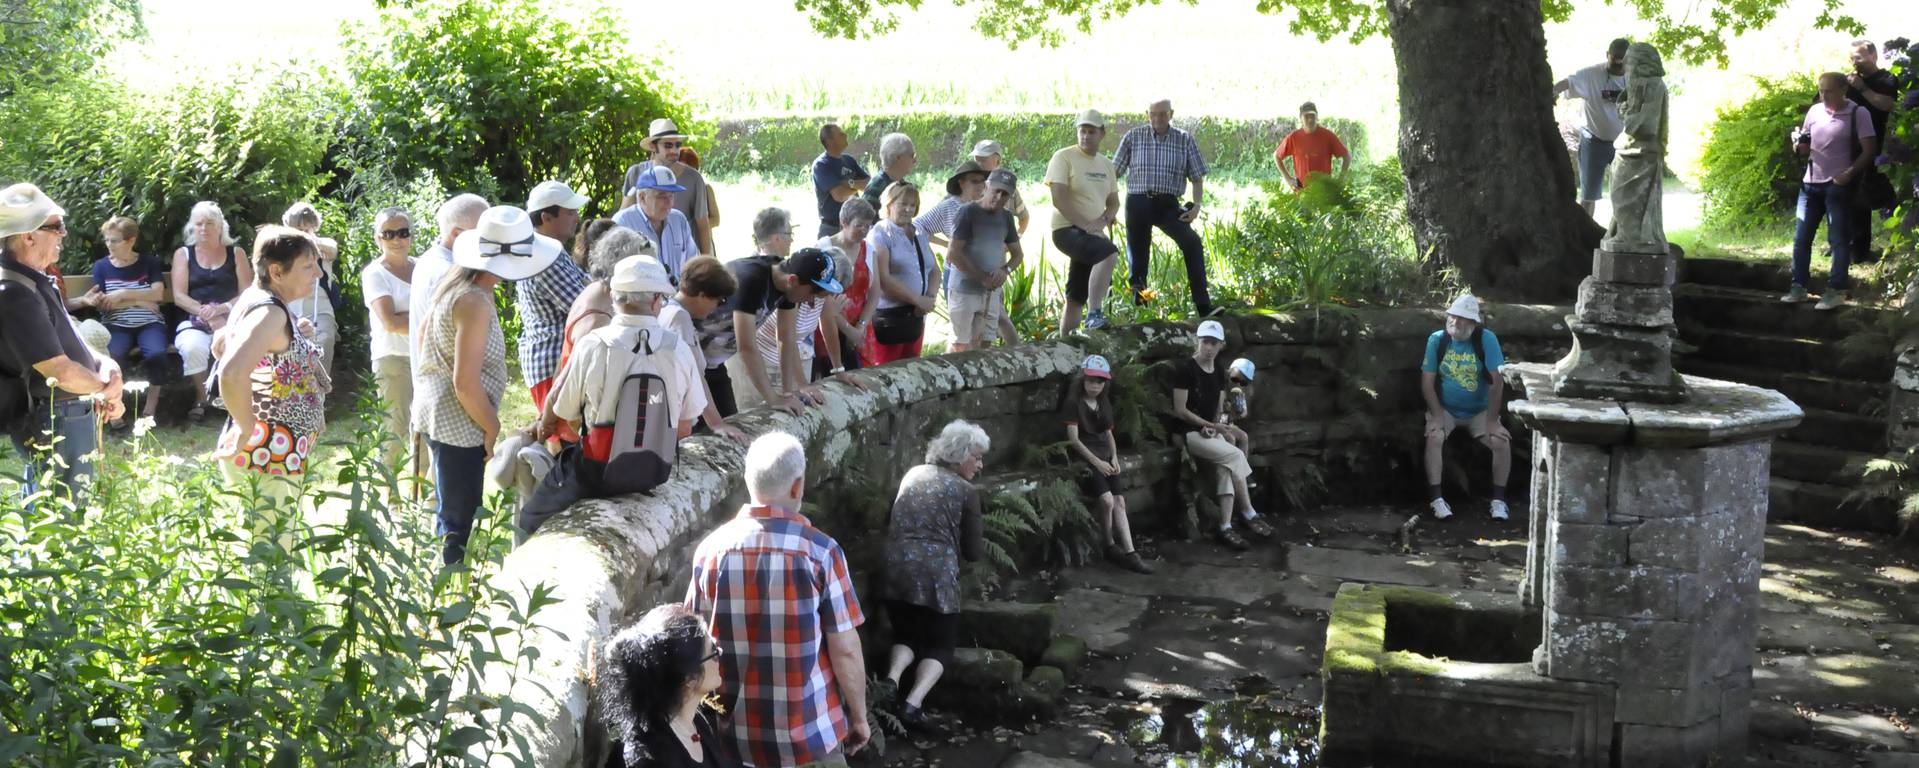 Guided tours for groups © OTPRM